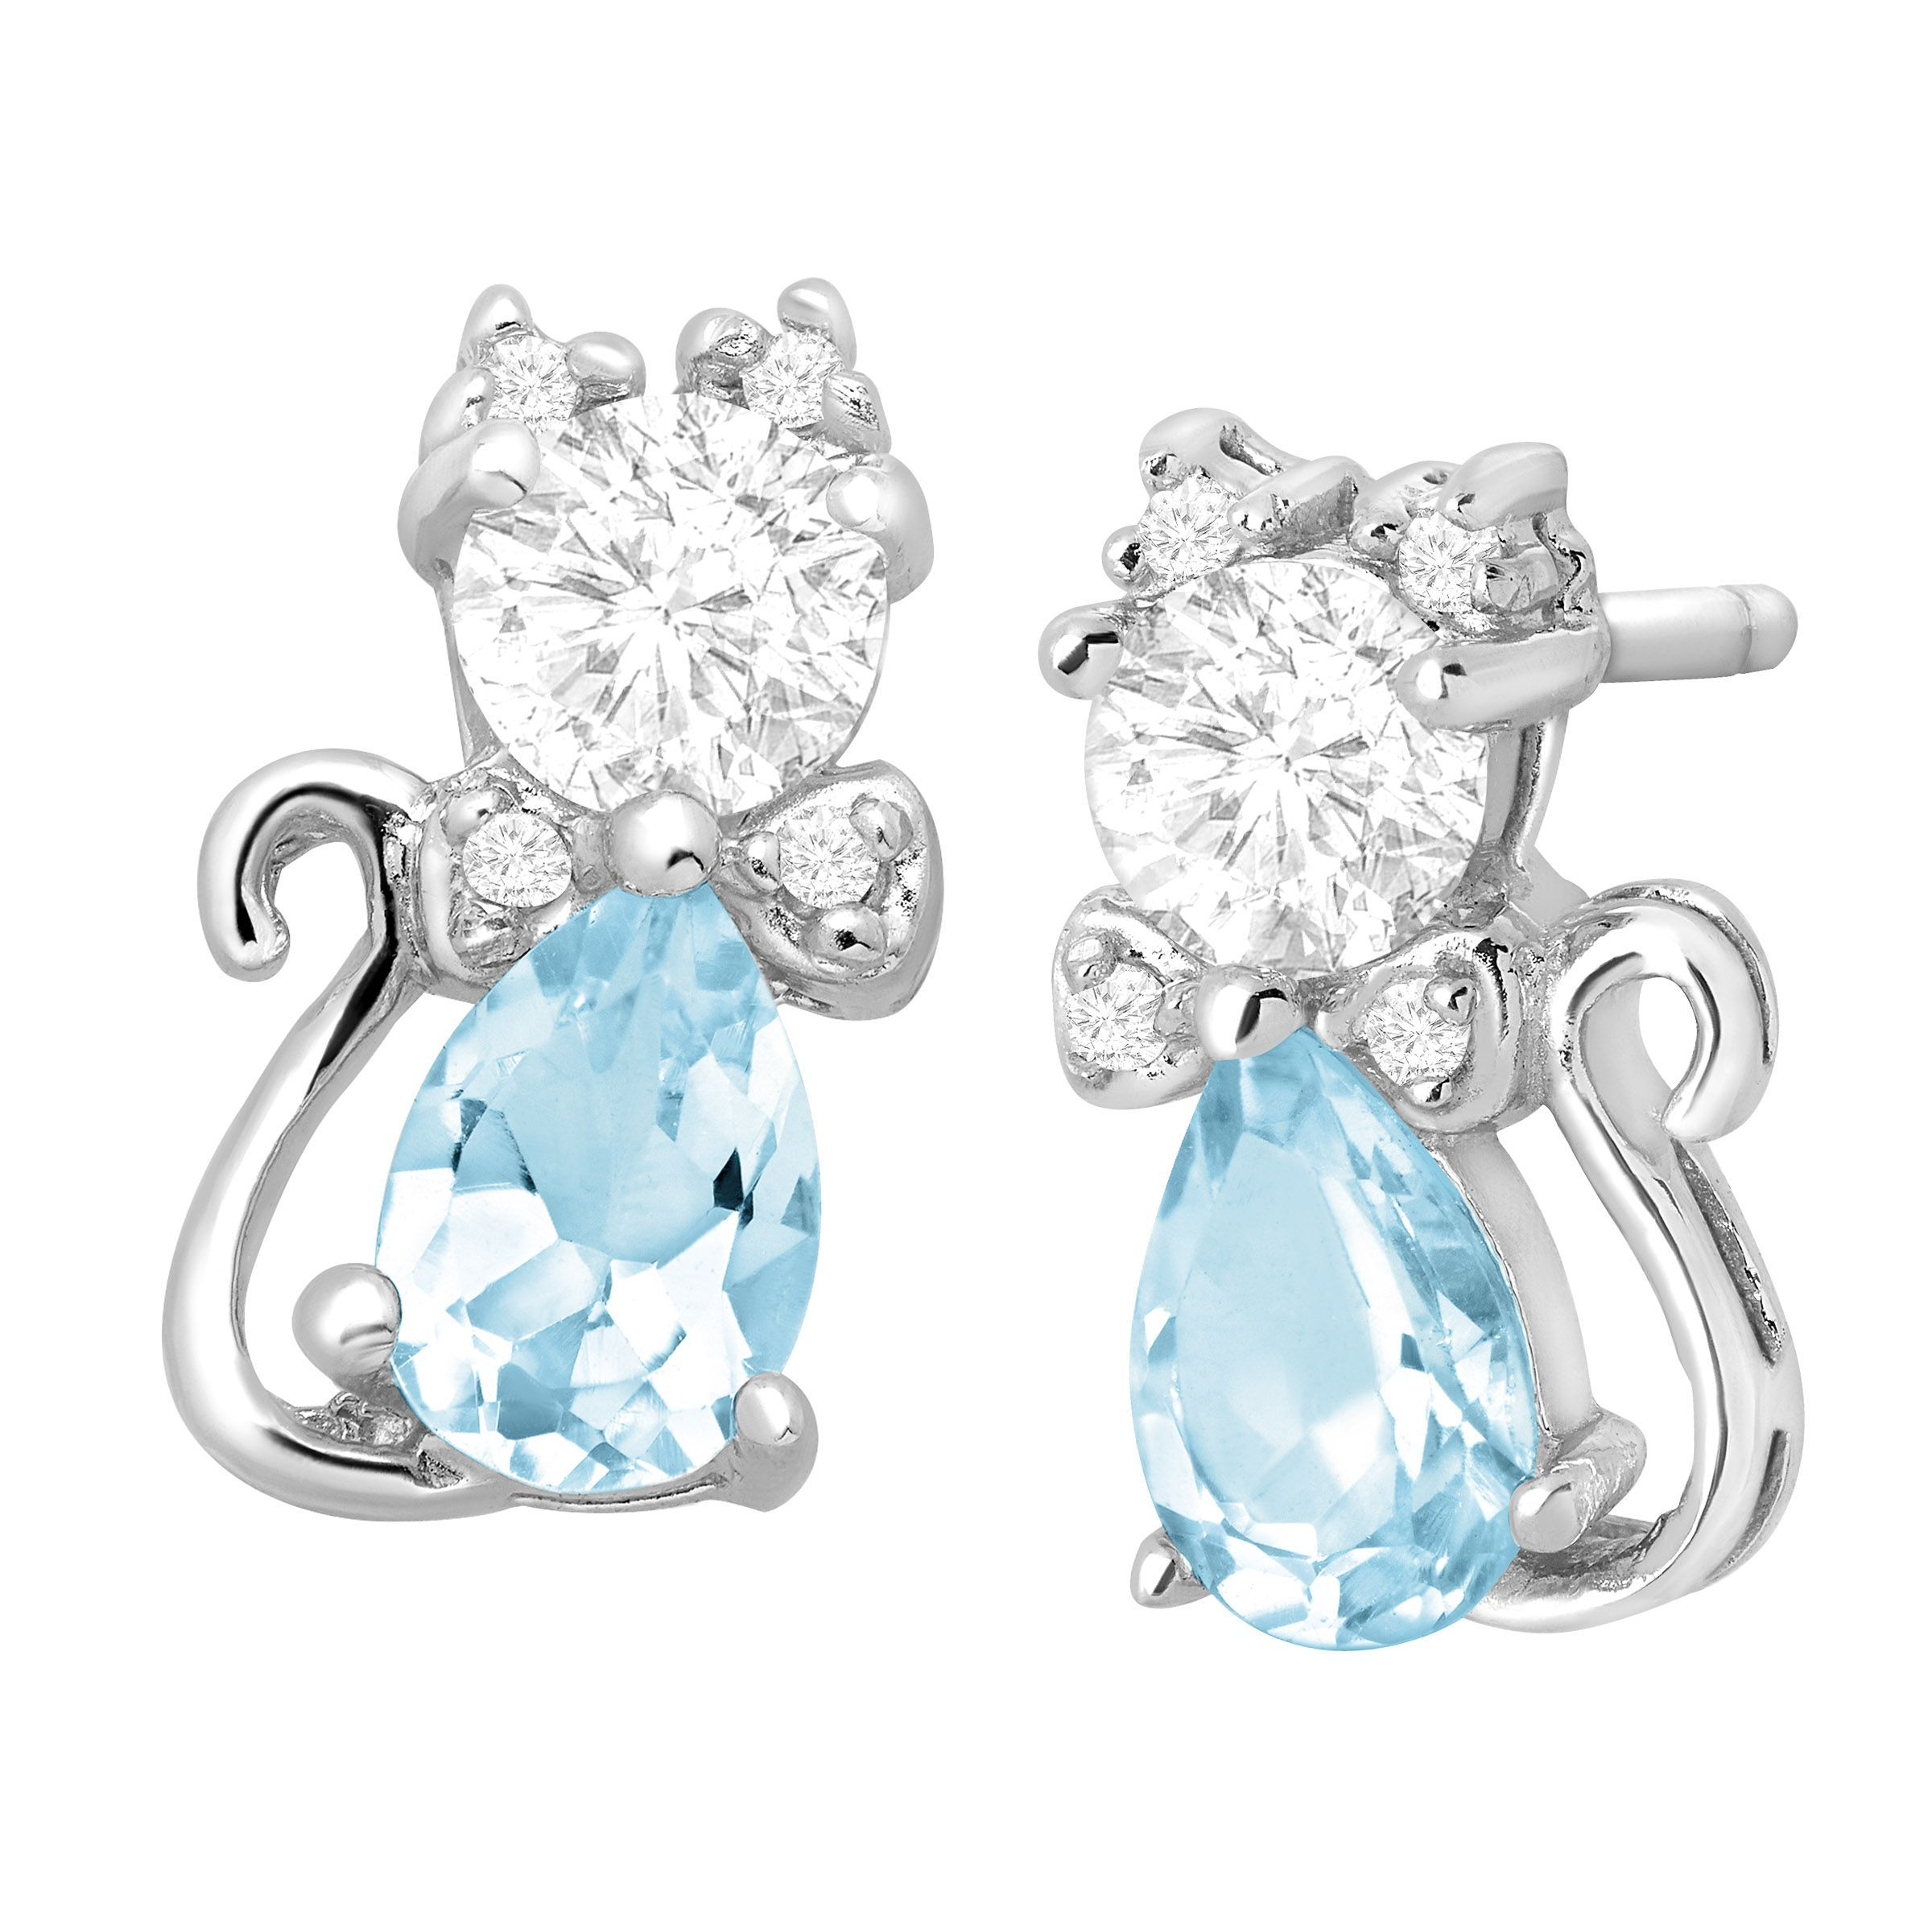 be2da5f0d Details about 1 7/8 ct Natural Sky Blue Topaz & CZ Cat Stud Earrings in Sterling  Silver